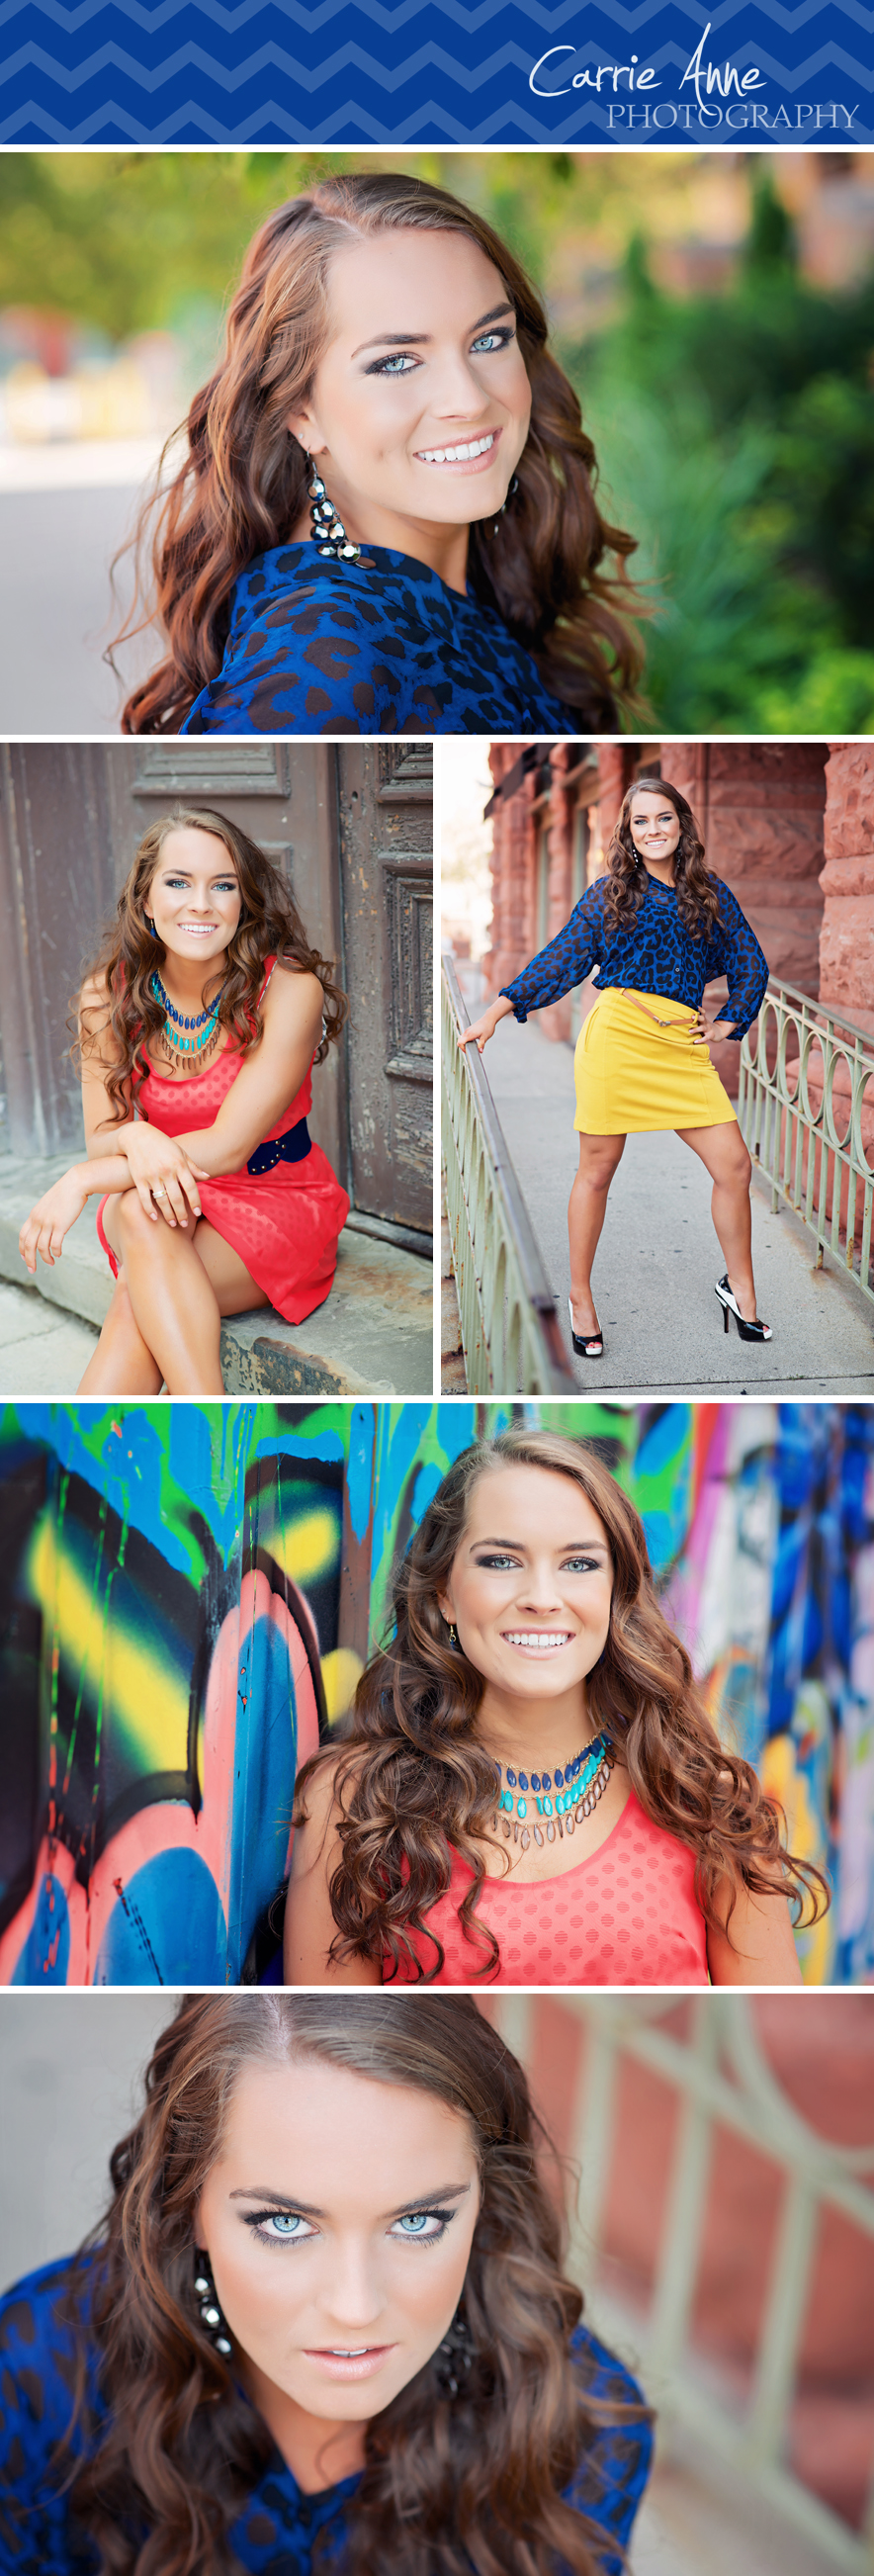 Ultimate Senior Girl Session in Urban Ada, Grand Rapids, Cascade, Michigan. Natural, funky, bright, cheery, colorful, photography.